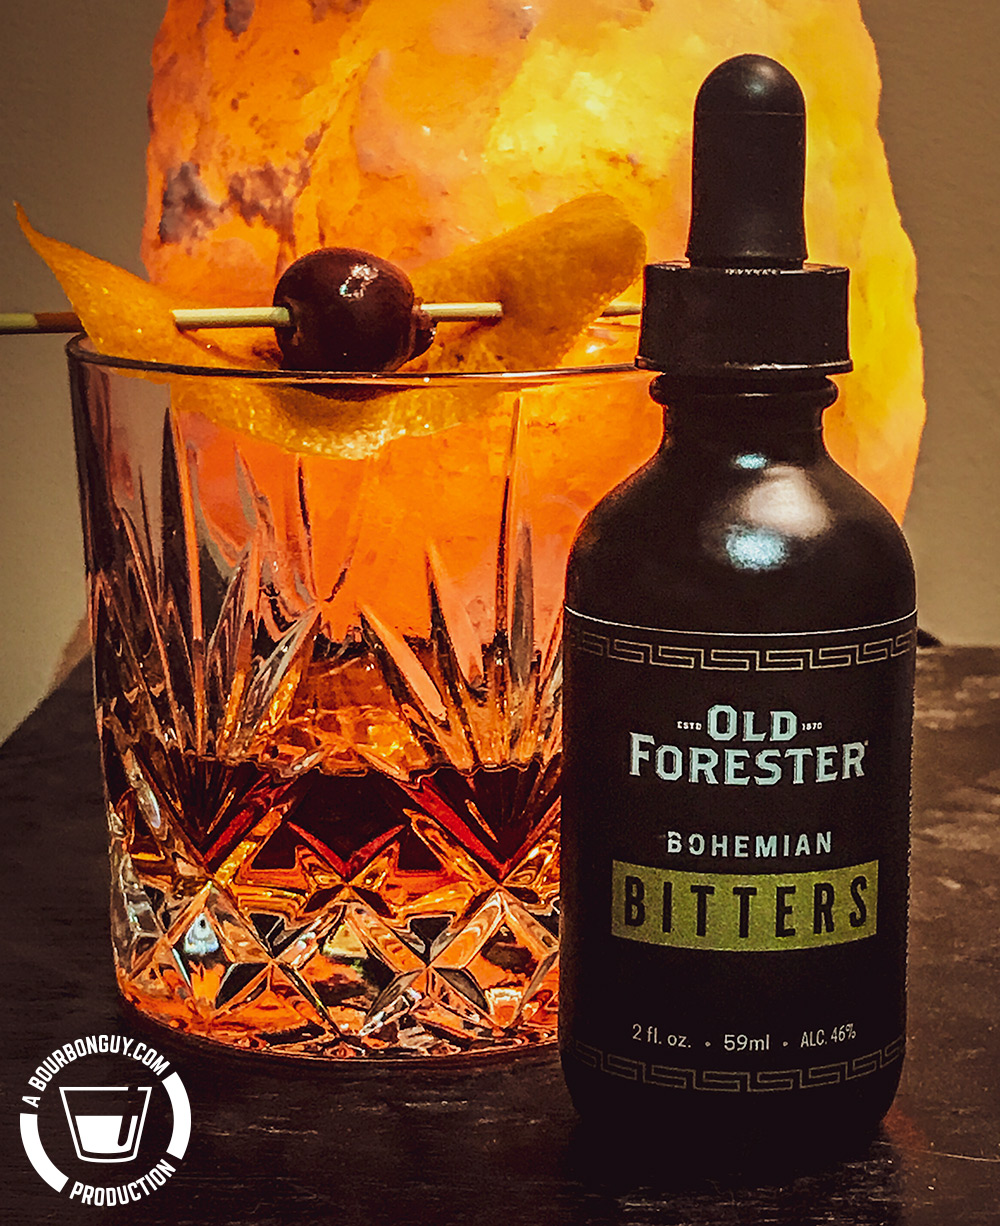 IMAGE: An old fashioned and a bottle of Old Forester Bohemian Bitters